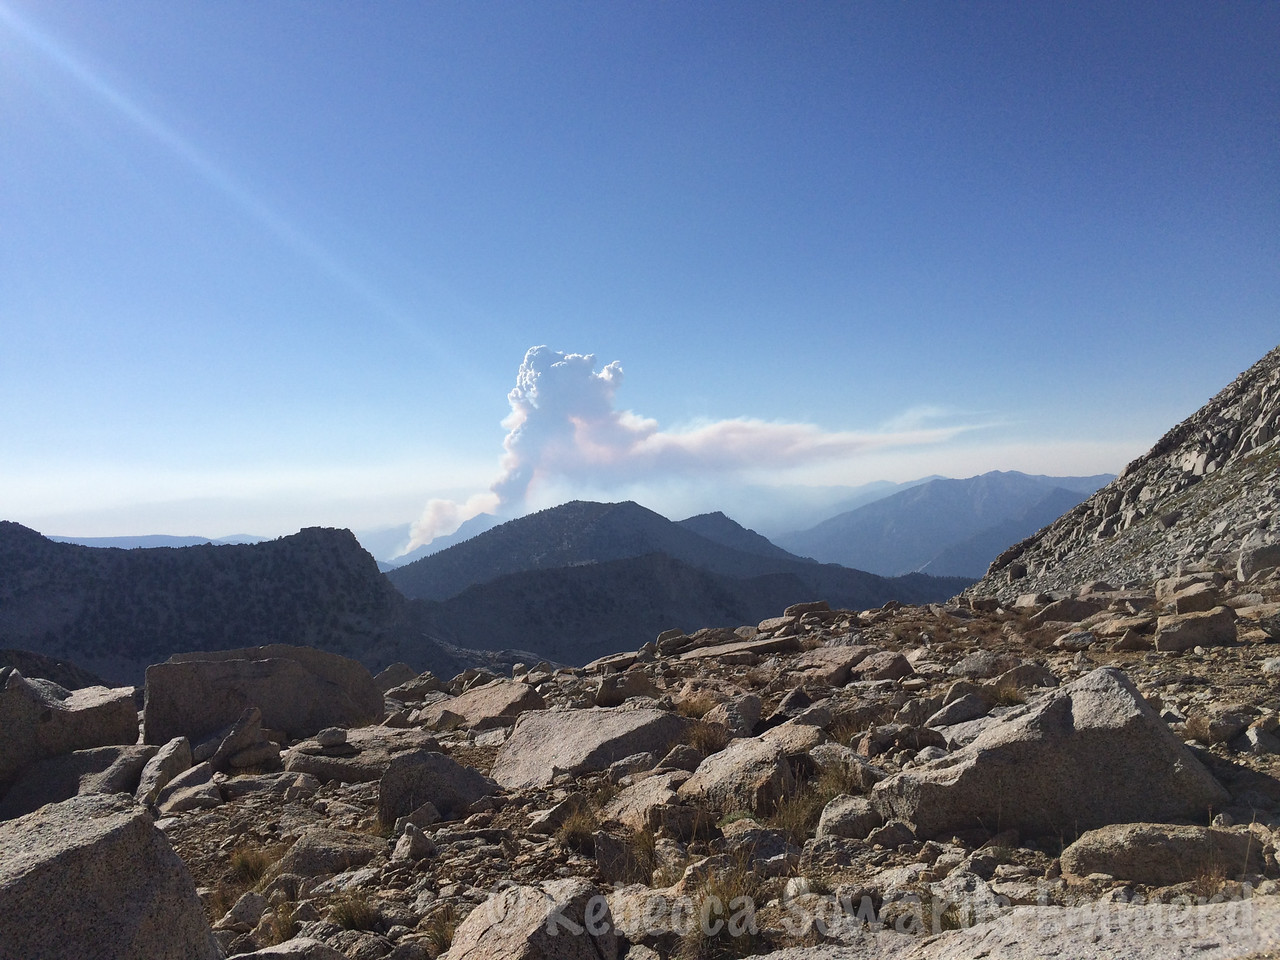 As we descended Sphinx Pass I watched the pyrocumulus clouds from the Rough Fire grow